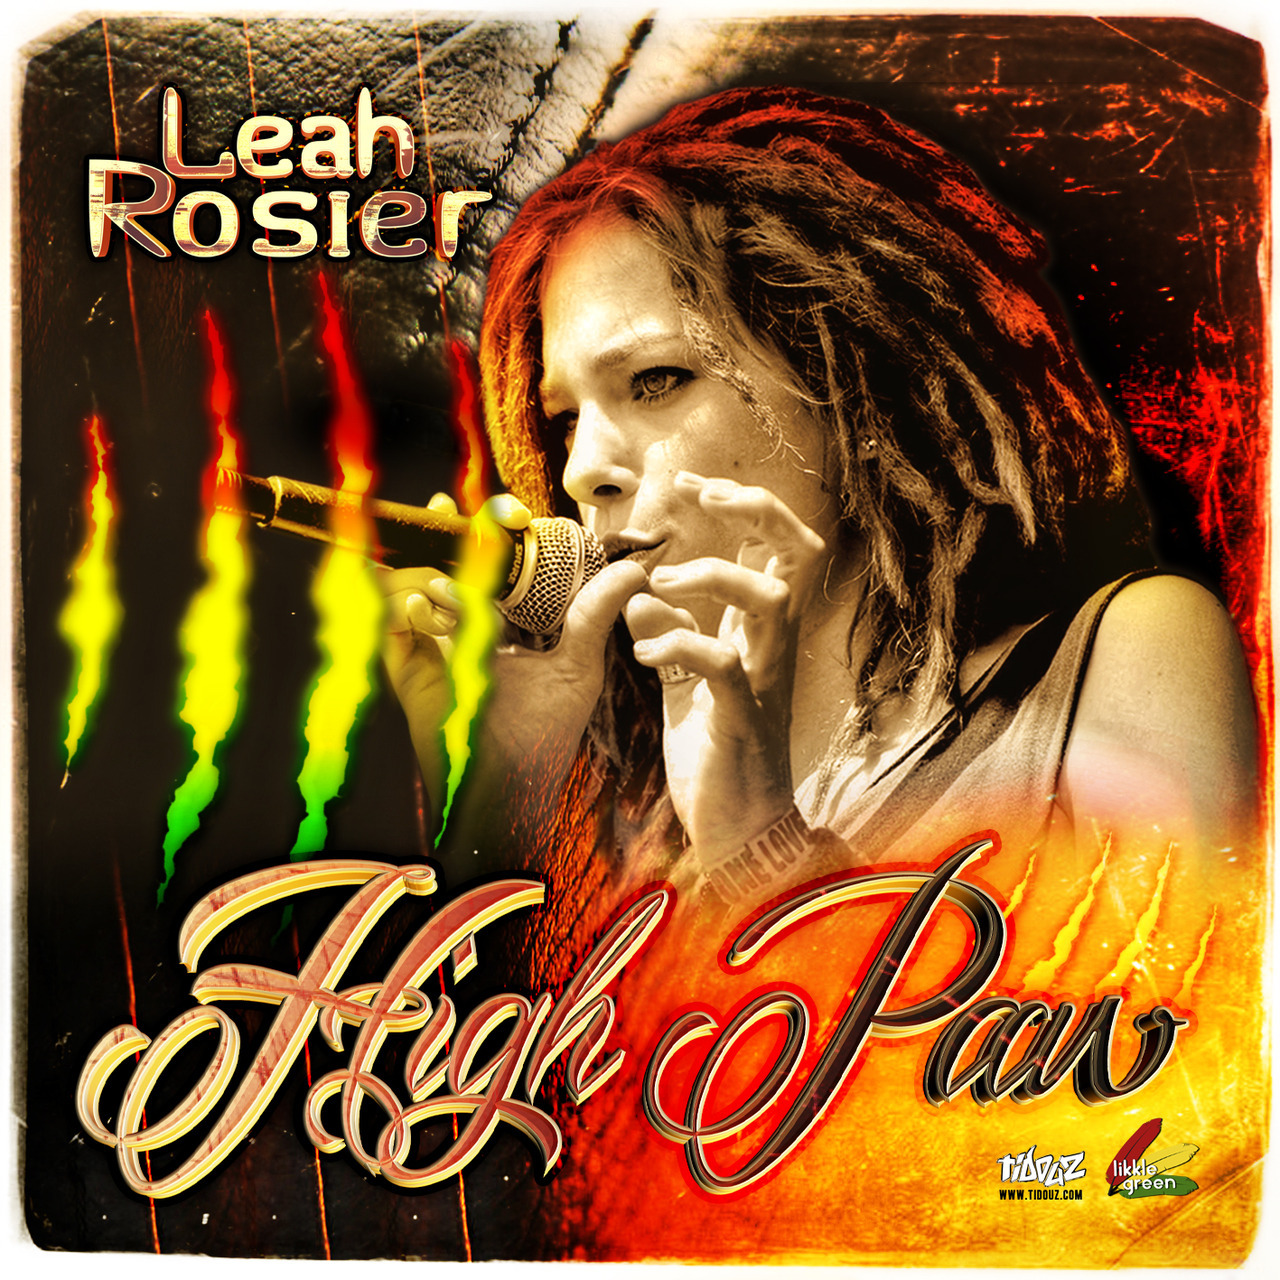 Coverfoto album Leah Rosier